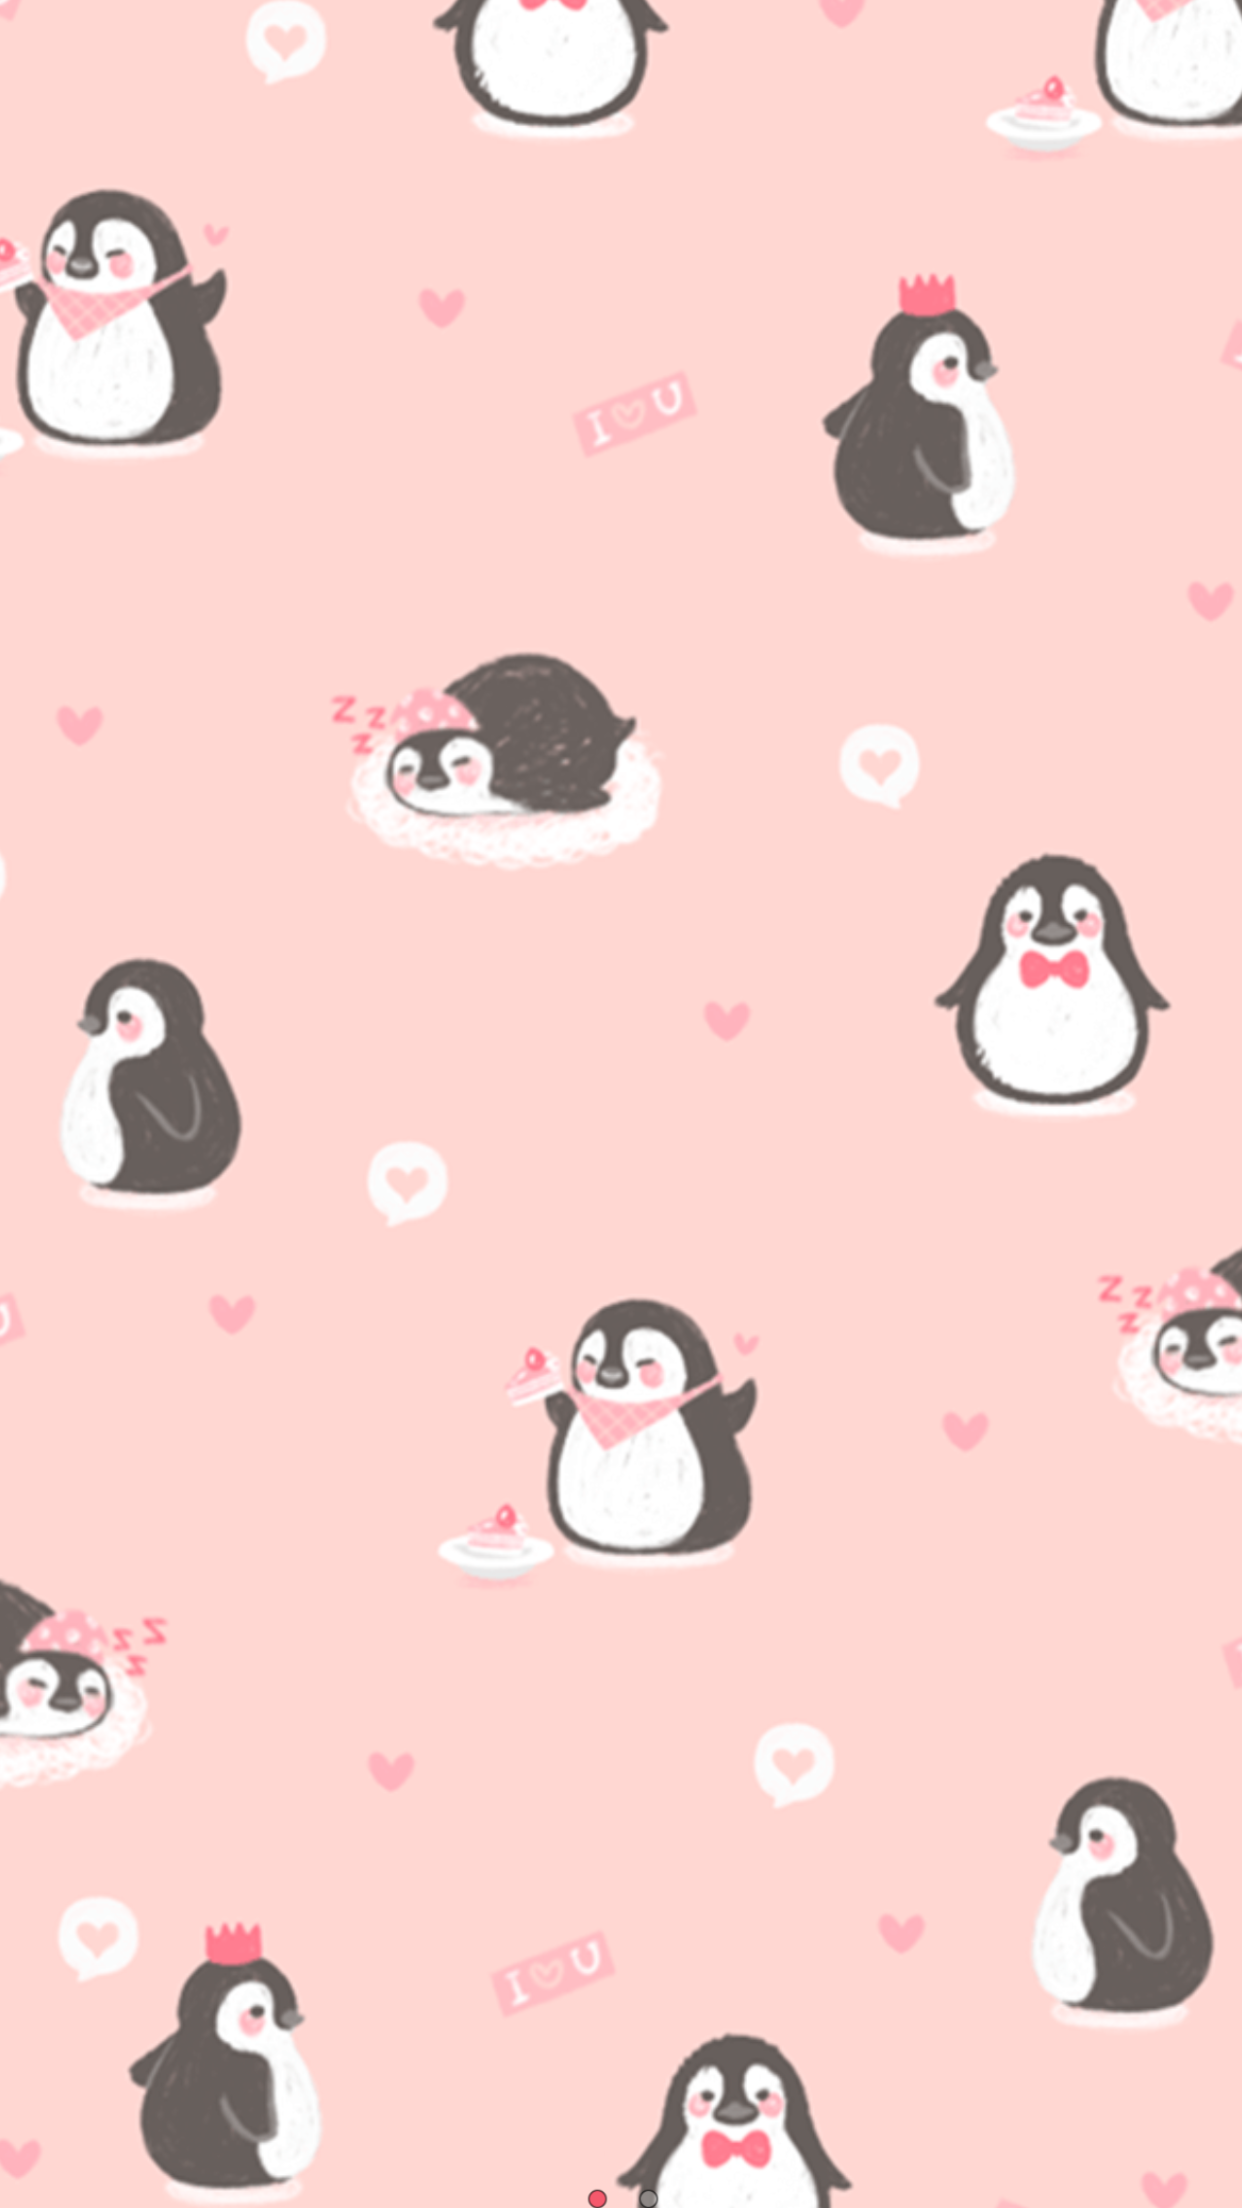 penguin wallpaperari jimenez méndez | wallpapers | pinterest